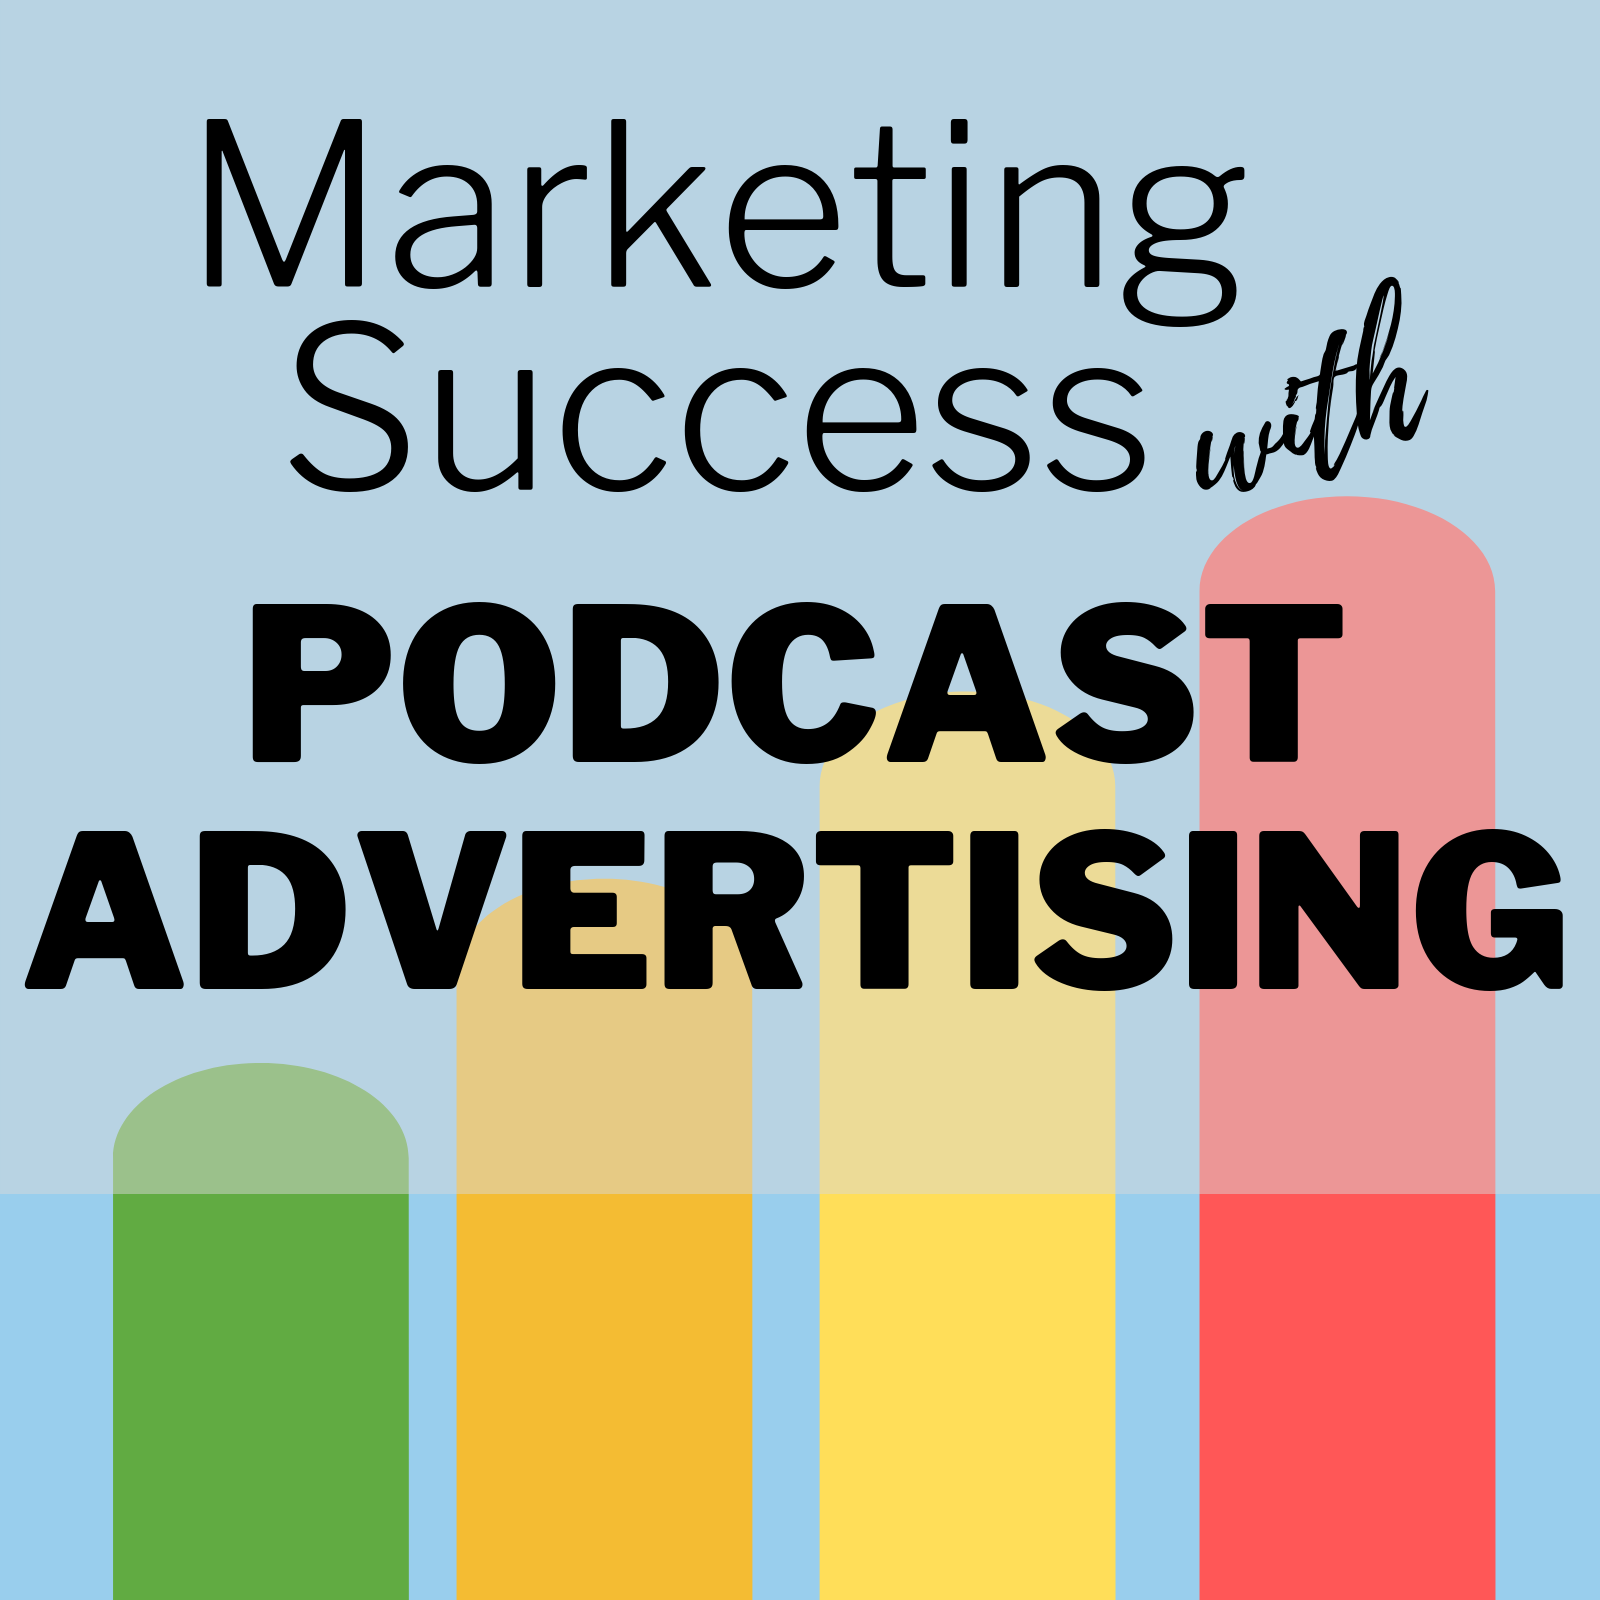 Artwork for Podcast Advertising - Turning Obstacles into Opportunities